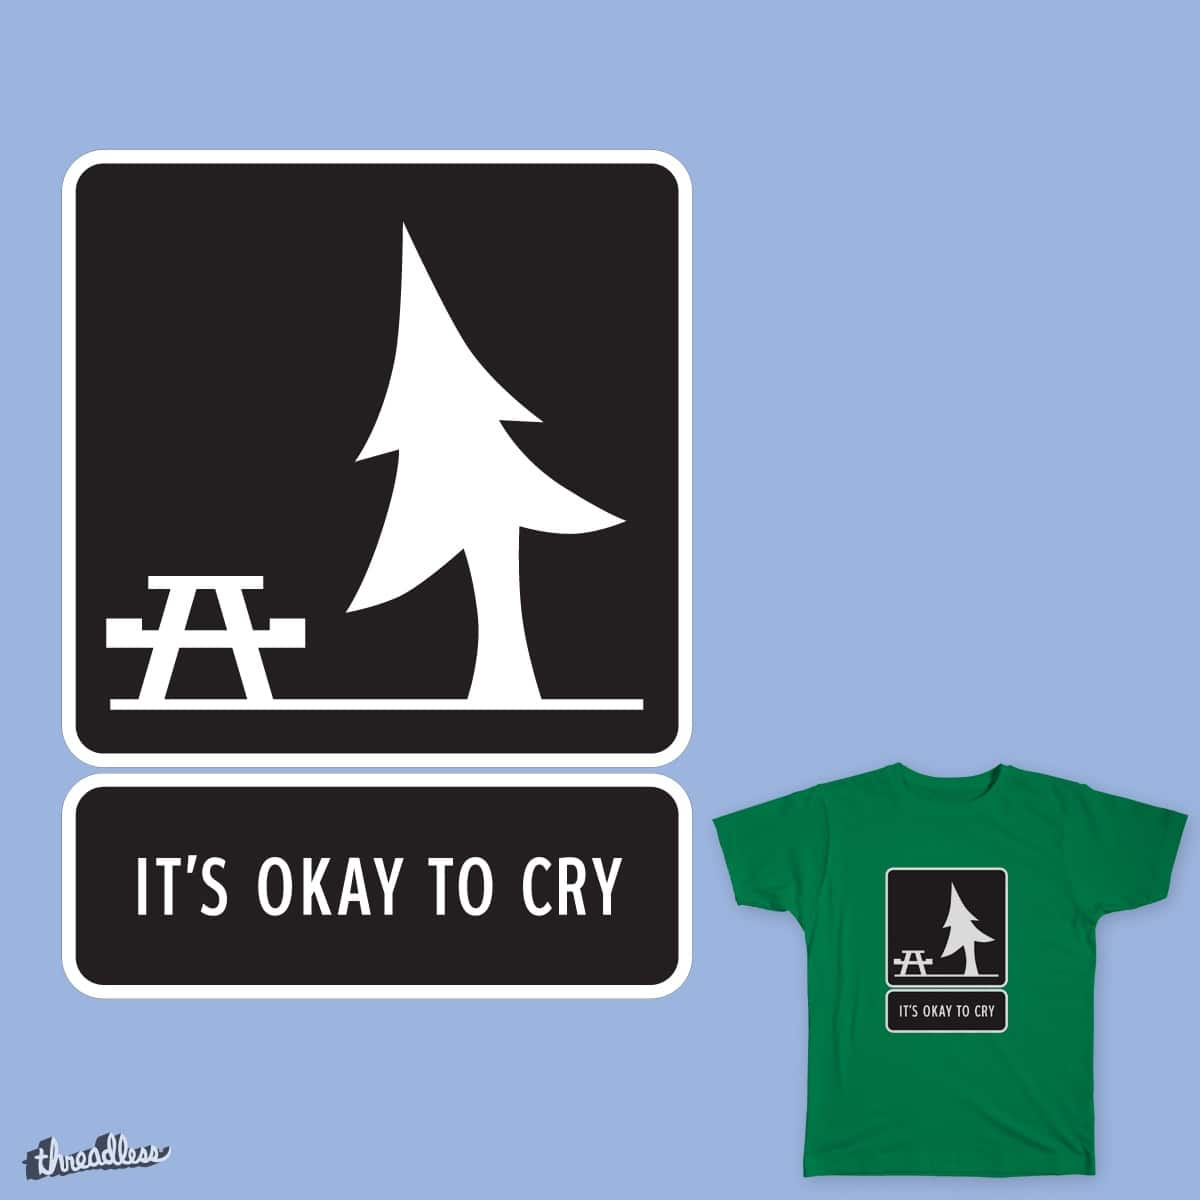 It's Okay to Cry by hateric on Threadless